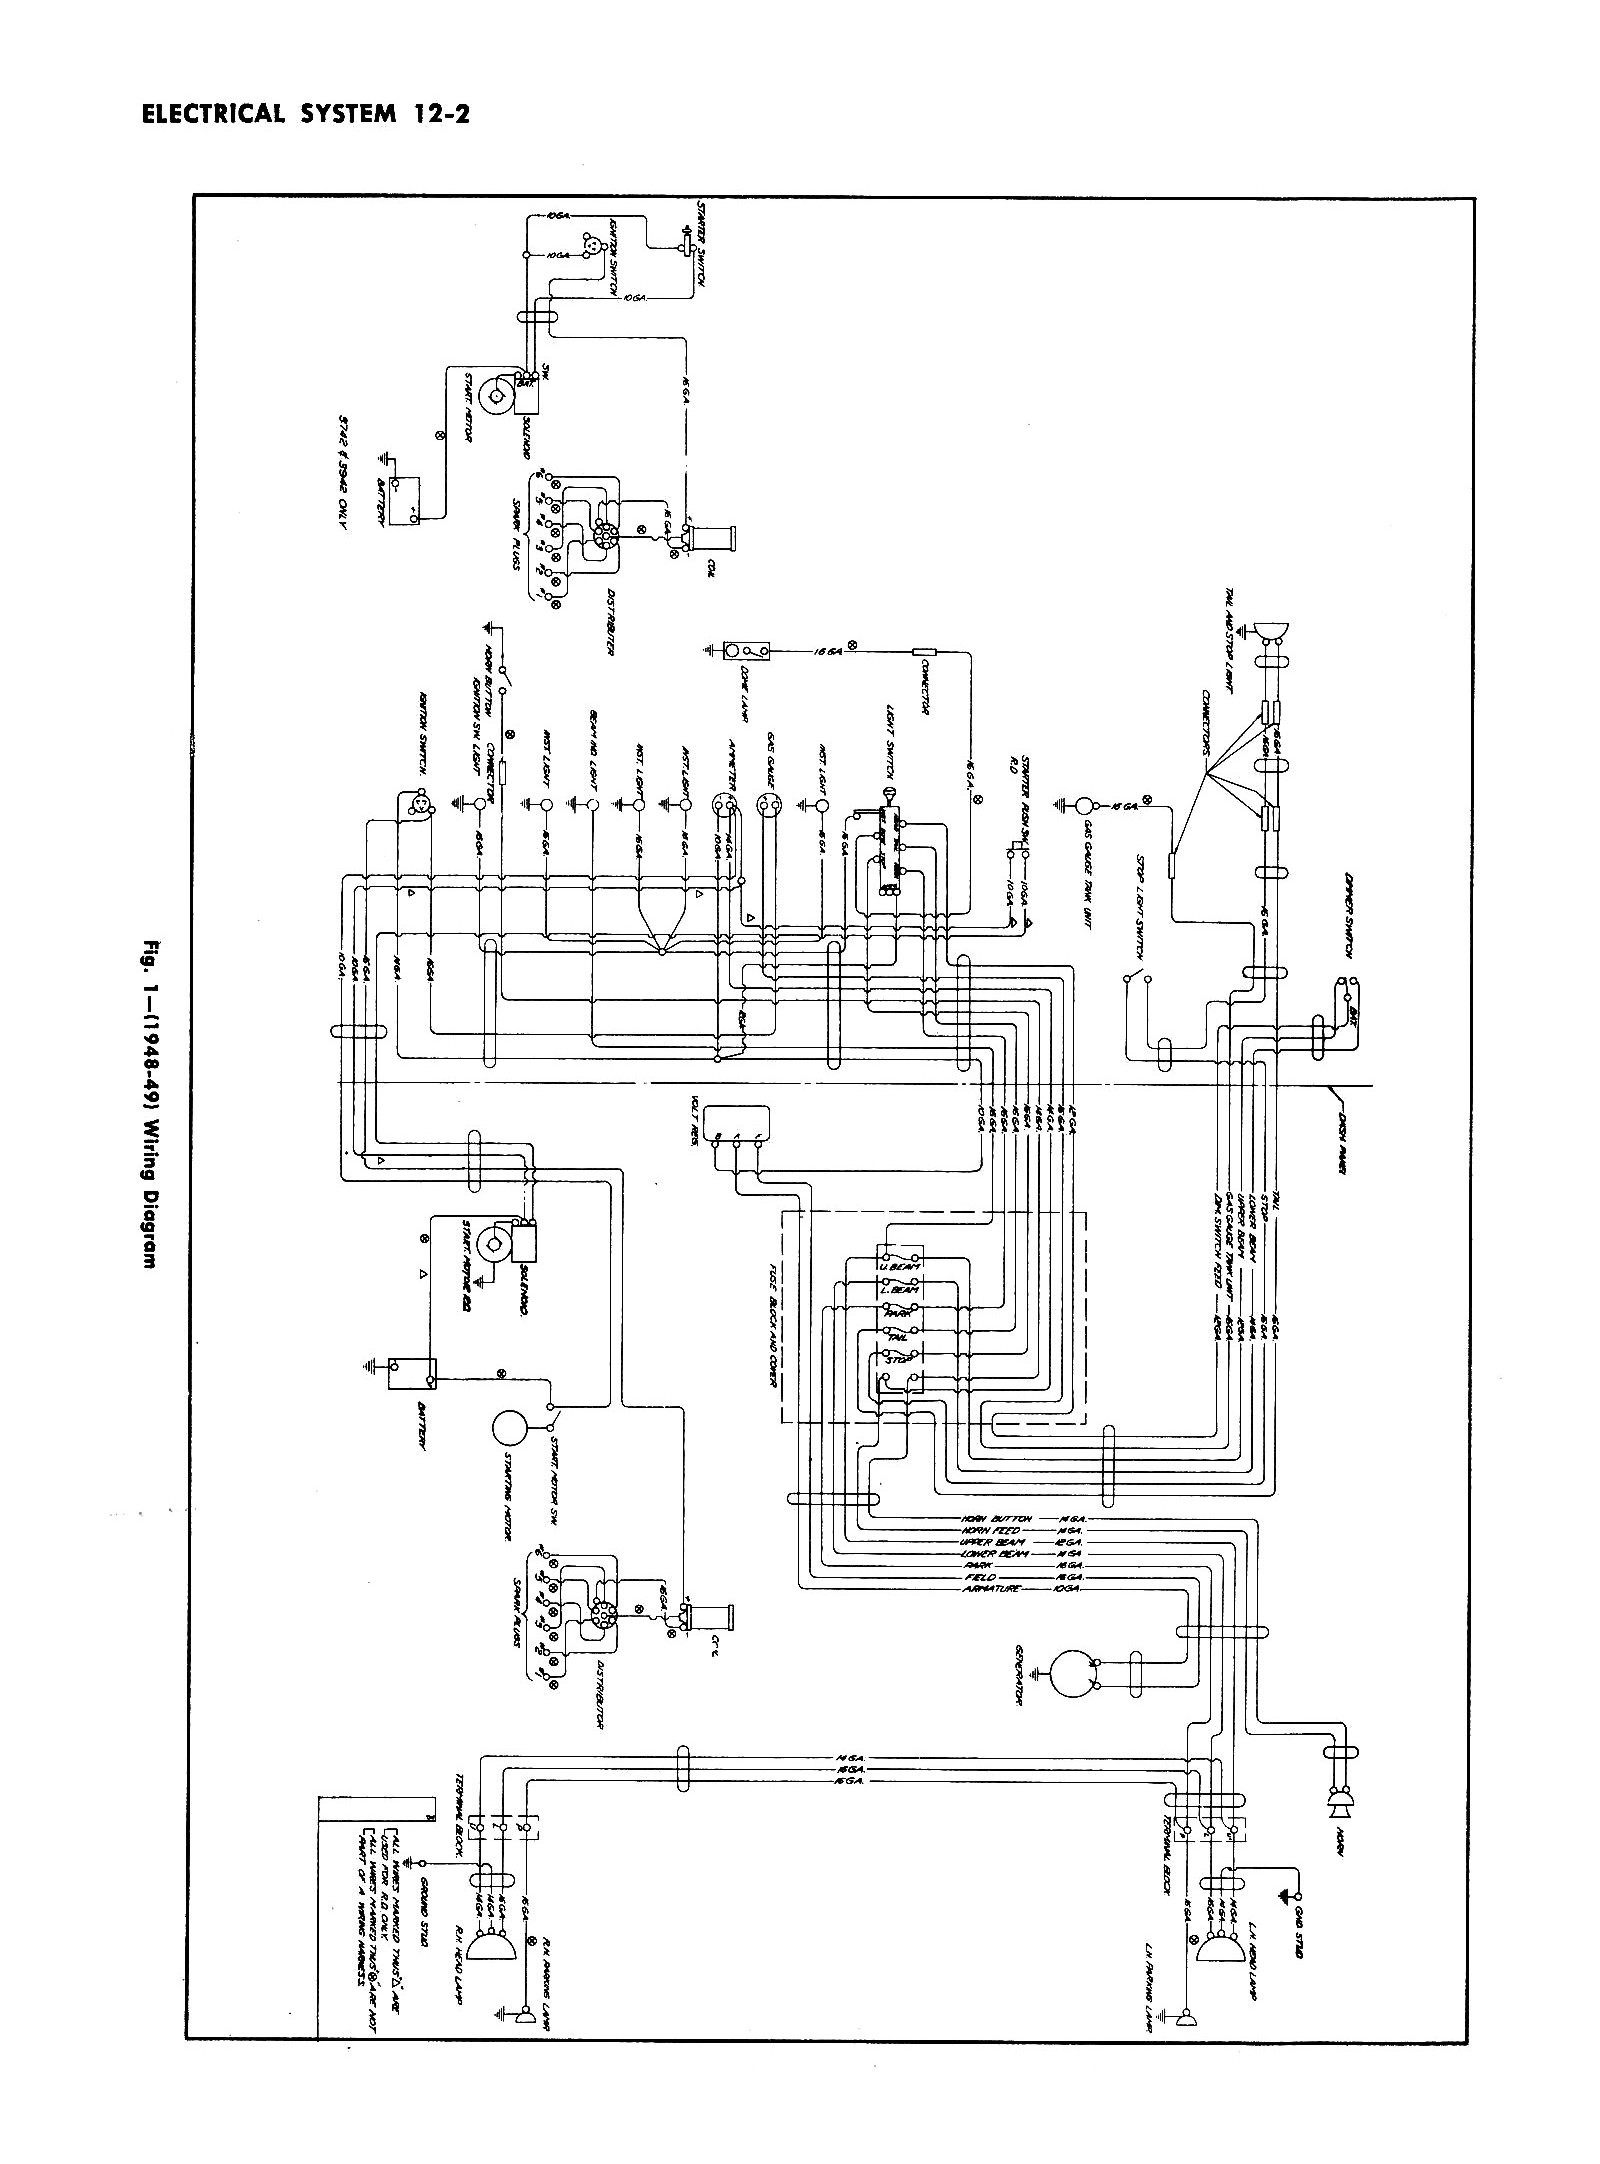 48car gmc ke switch wiring diagram wiring diagram simonand gmc truck wiring diagrams at panicattacktreatment.co